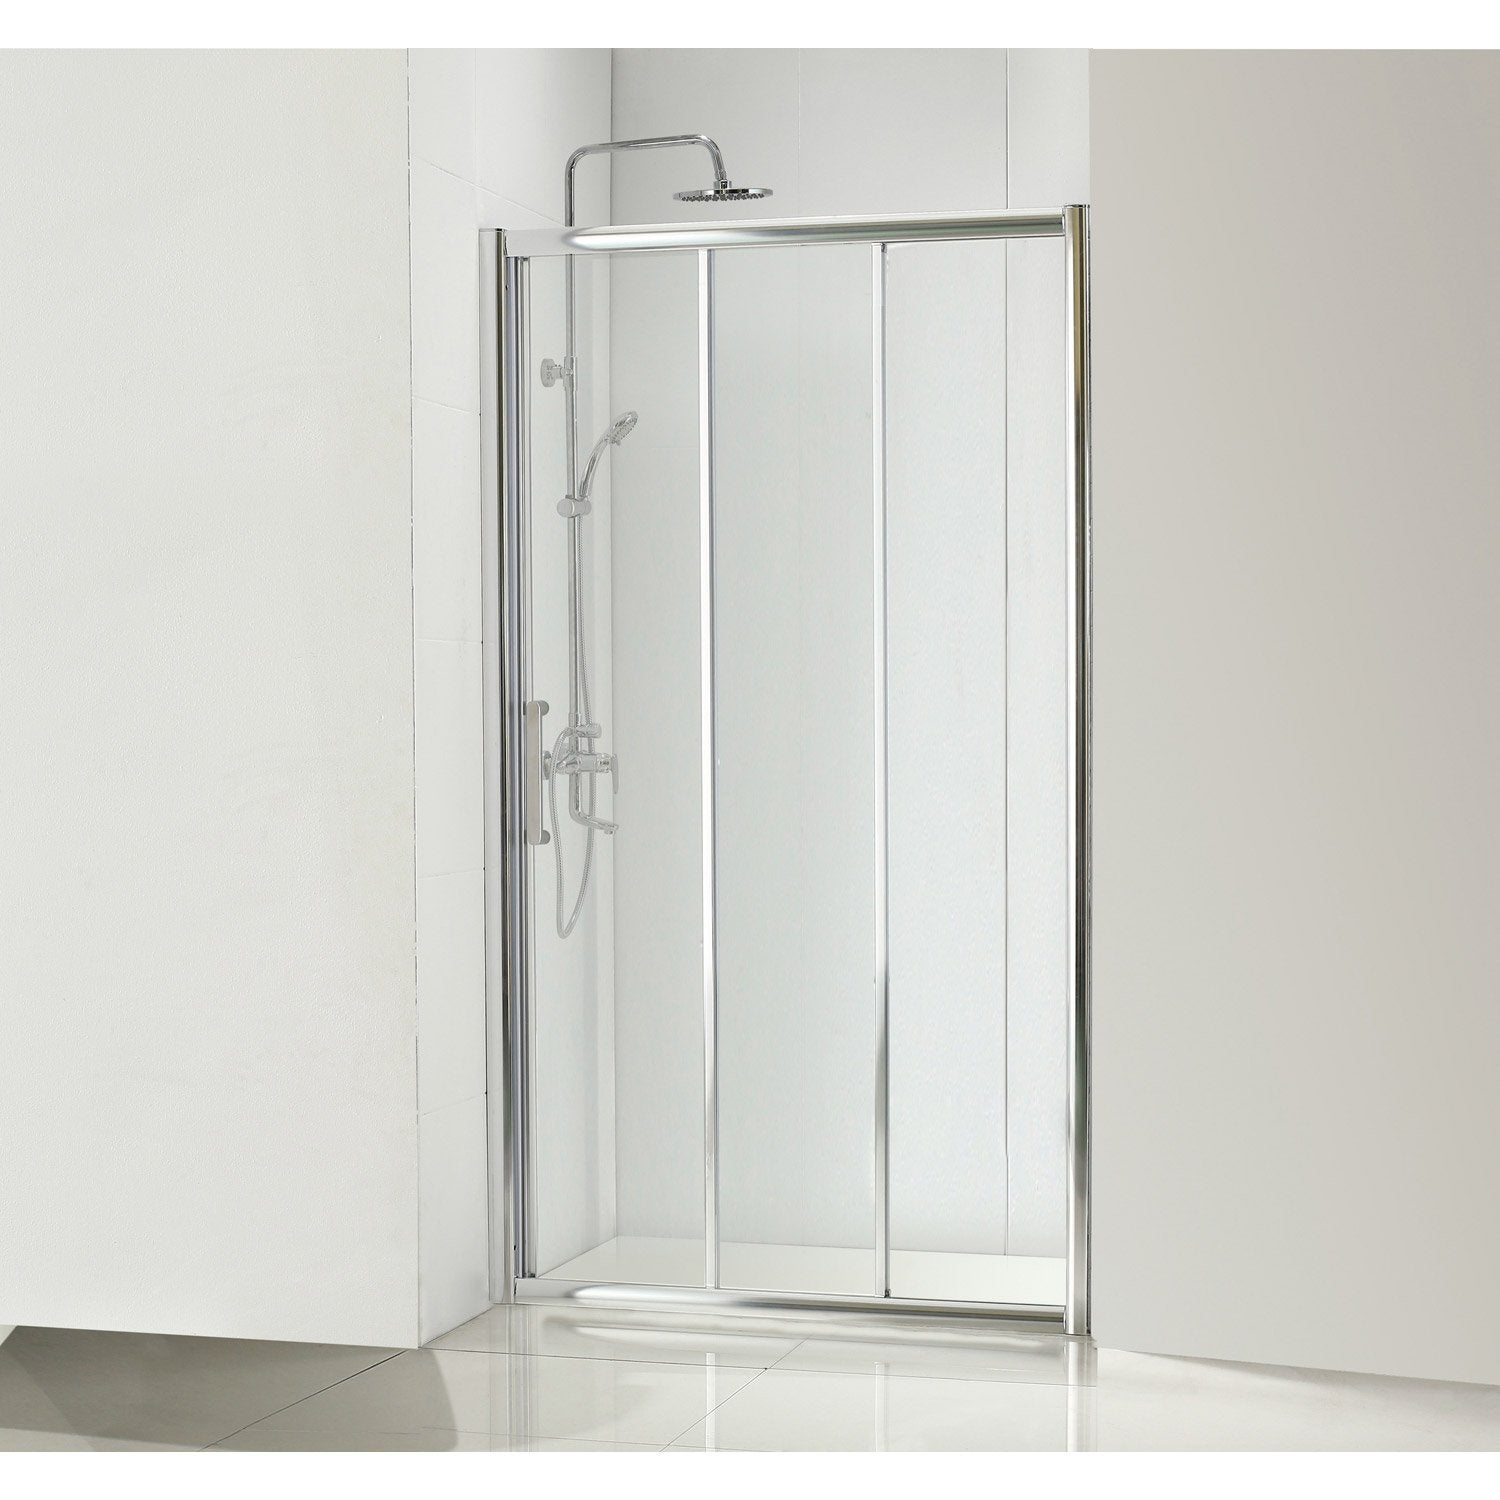 Porte de douche coulissante 90 cm transparent quad for Porte coulissante 93 cm